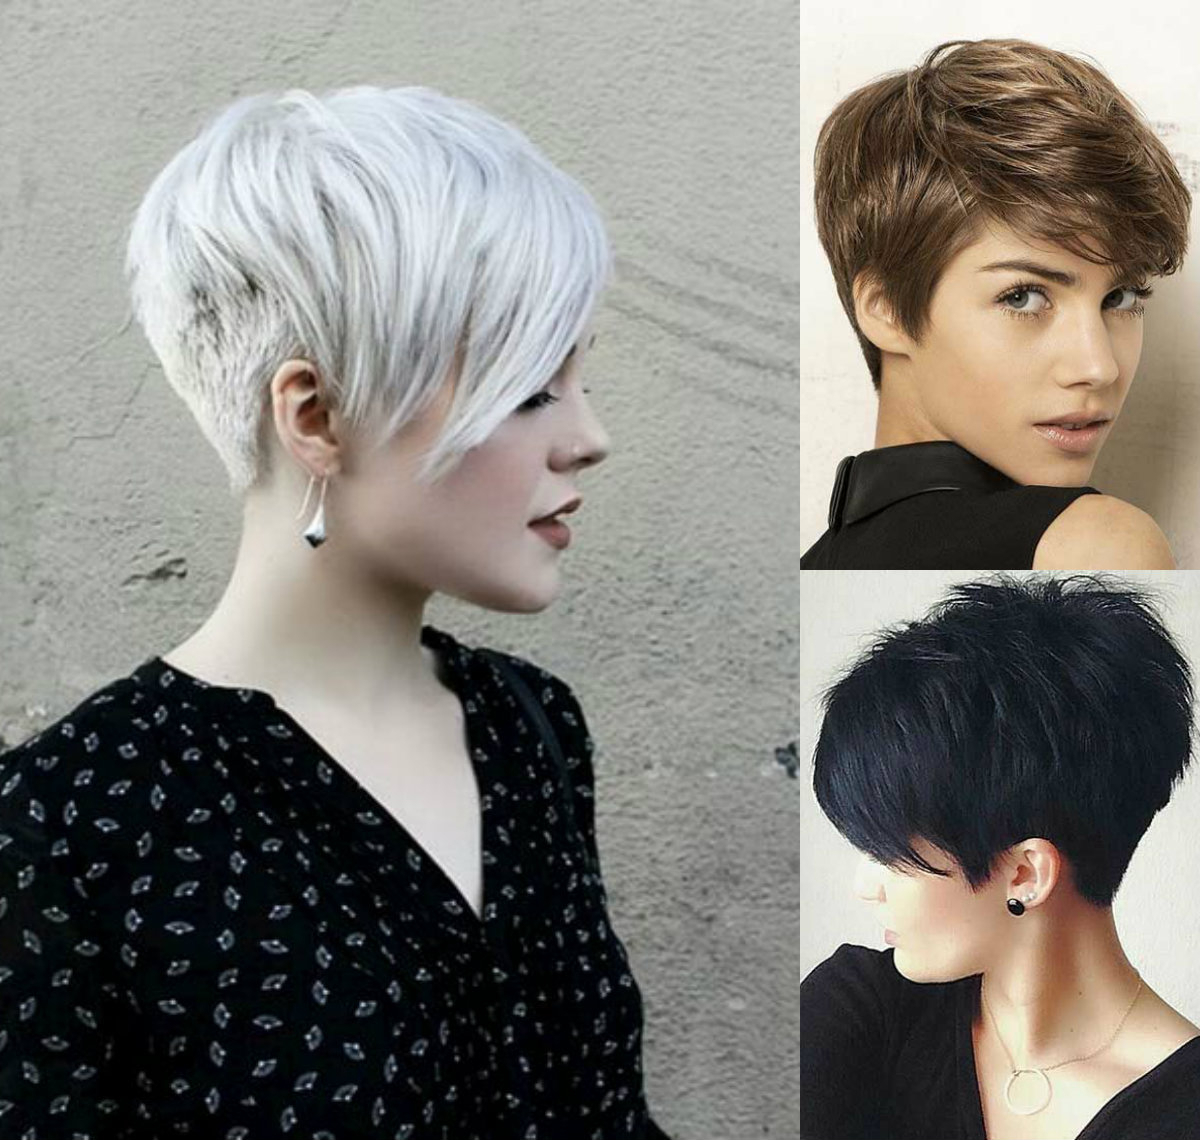 Vibrant Layered Pixie Haircuts 2017 | Hairdrome Inside Messy Pixie Hairstyles For Short Hair (View 20 of 20)